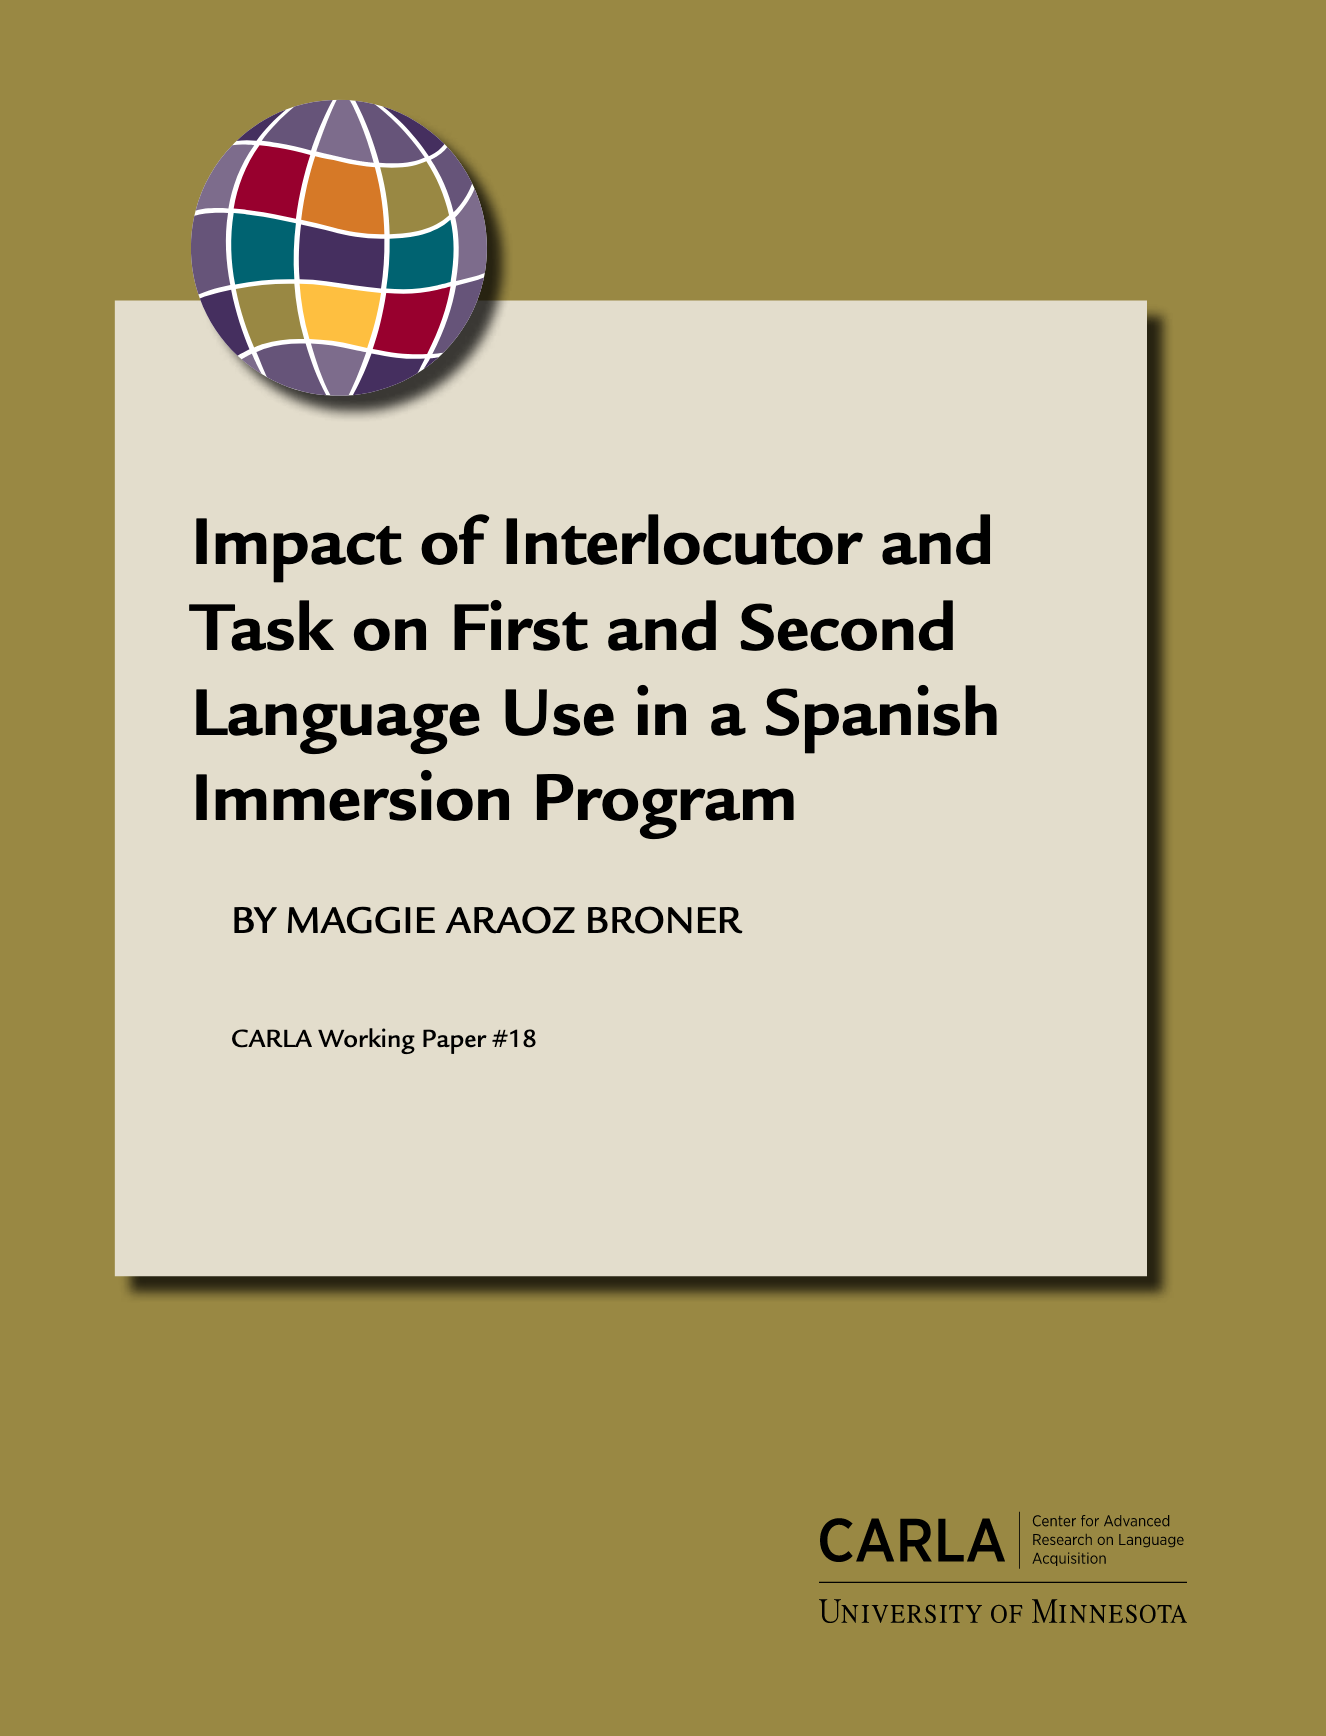 Impact of Interlocutor and Task on First and Second Language Use in a Spanish Immersion Program